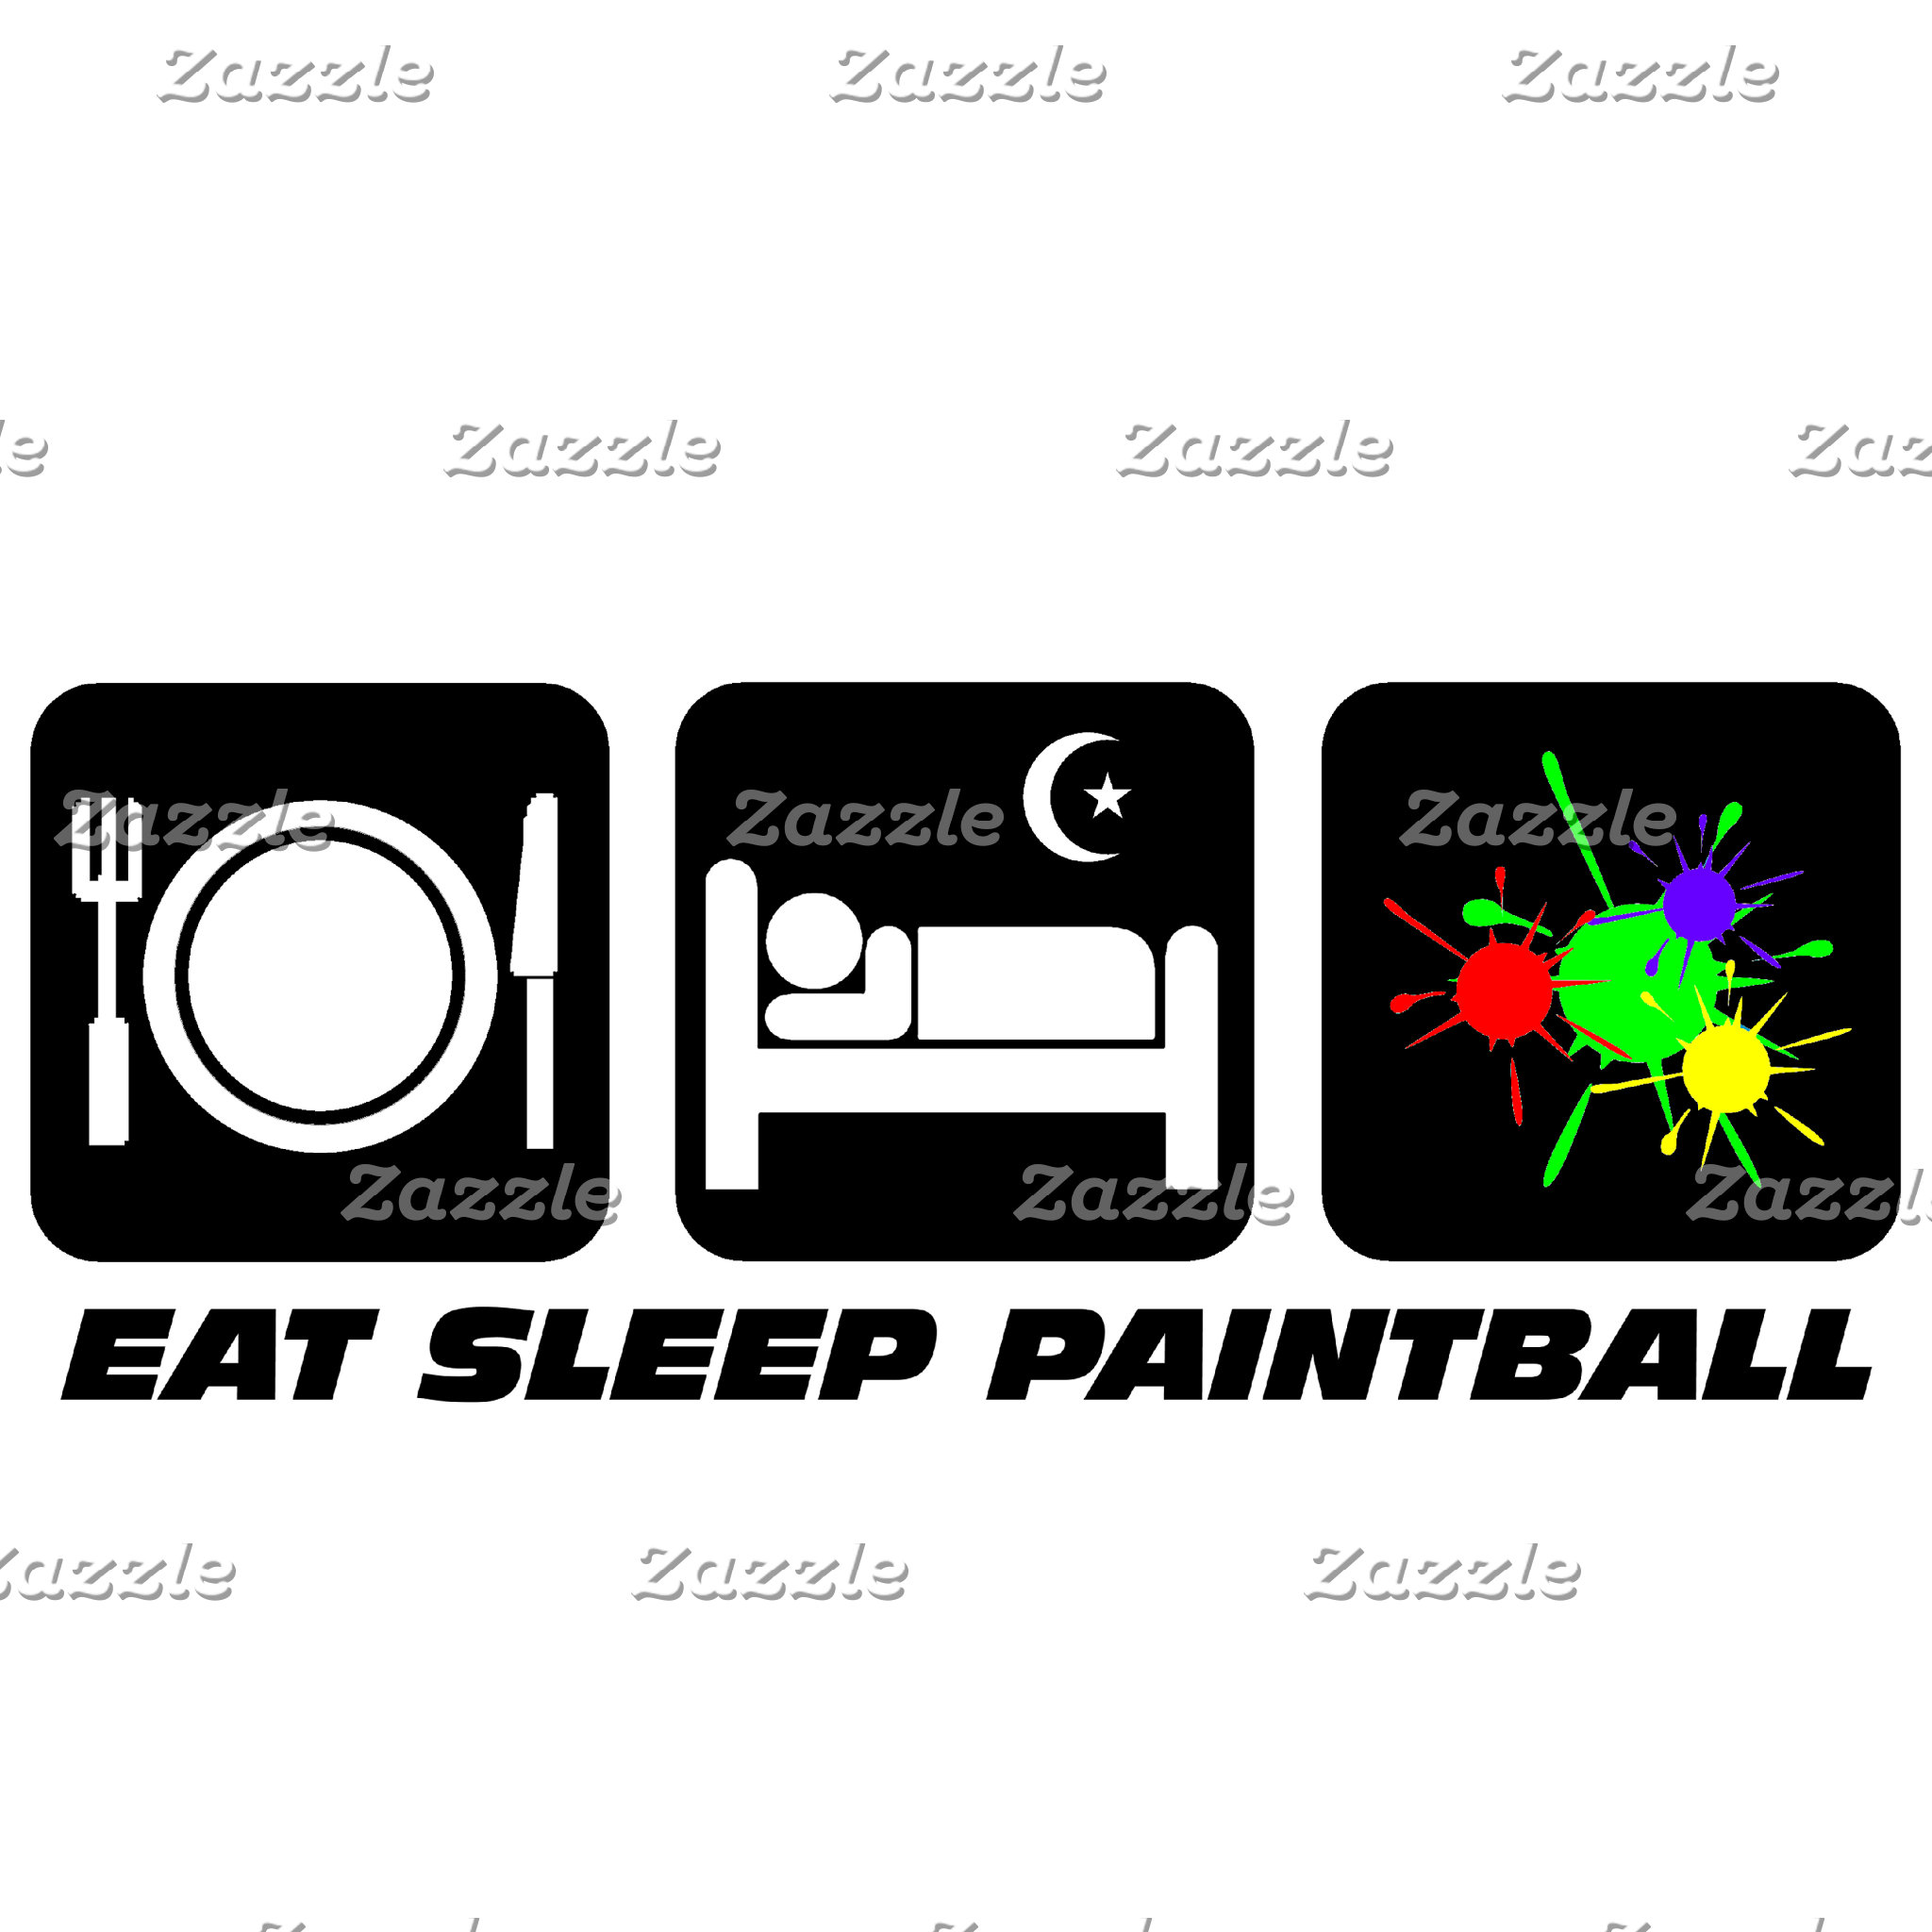 eat sleep paintball